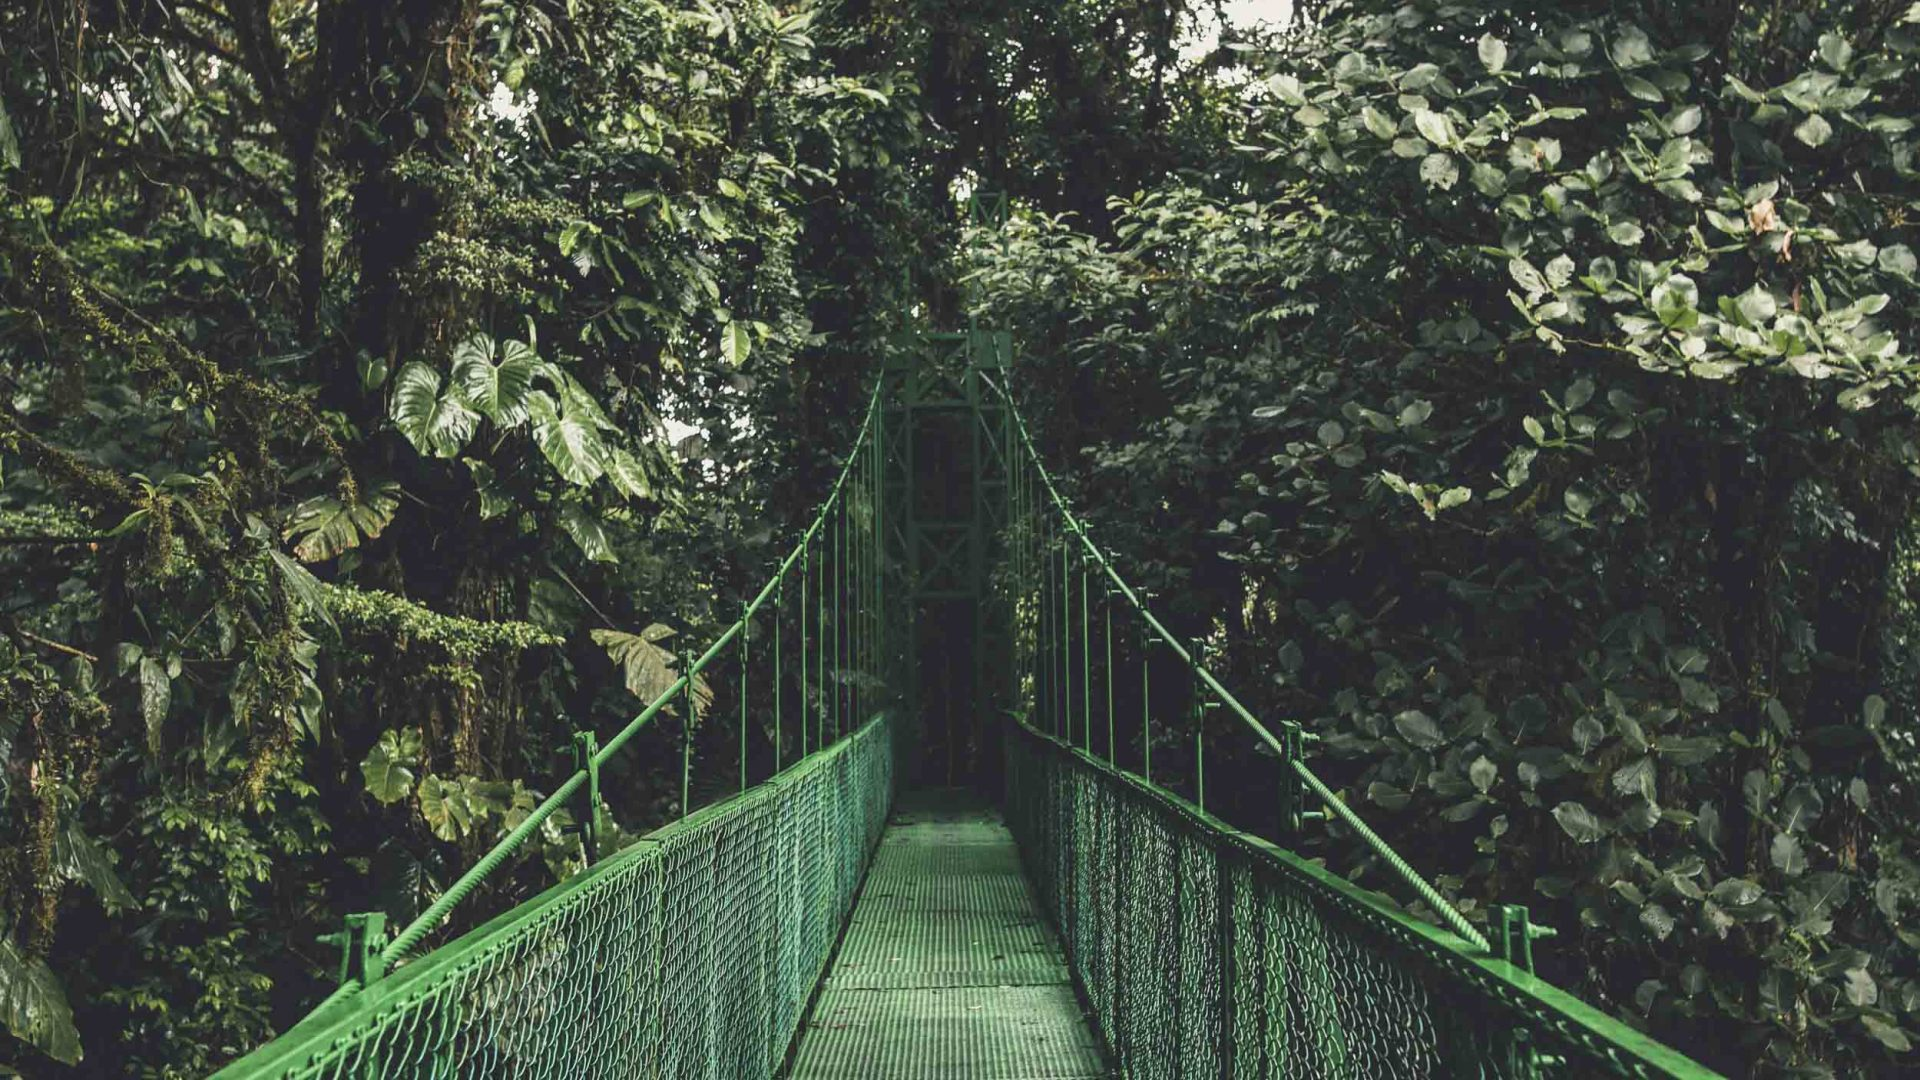 A bridge surrounded by lush green forest in Costa Rica's Monteverde region.